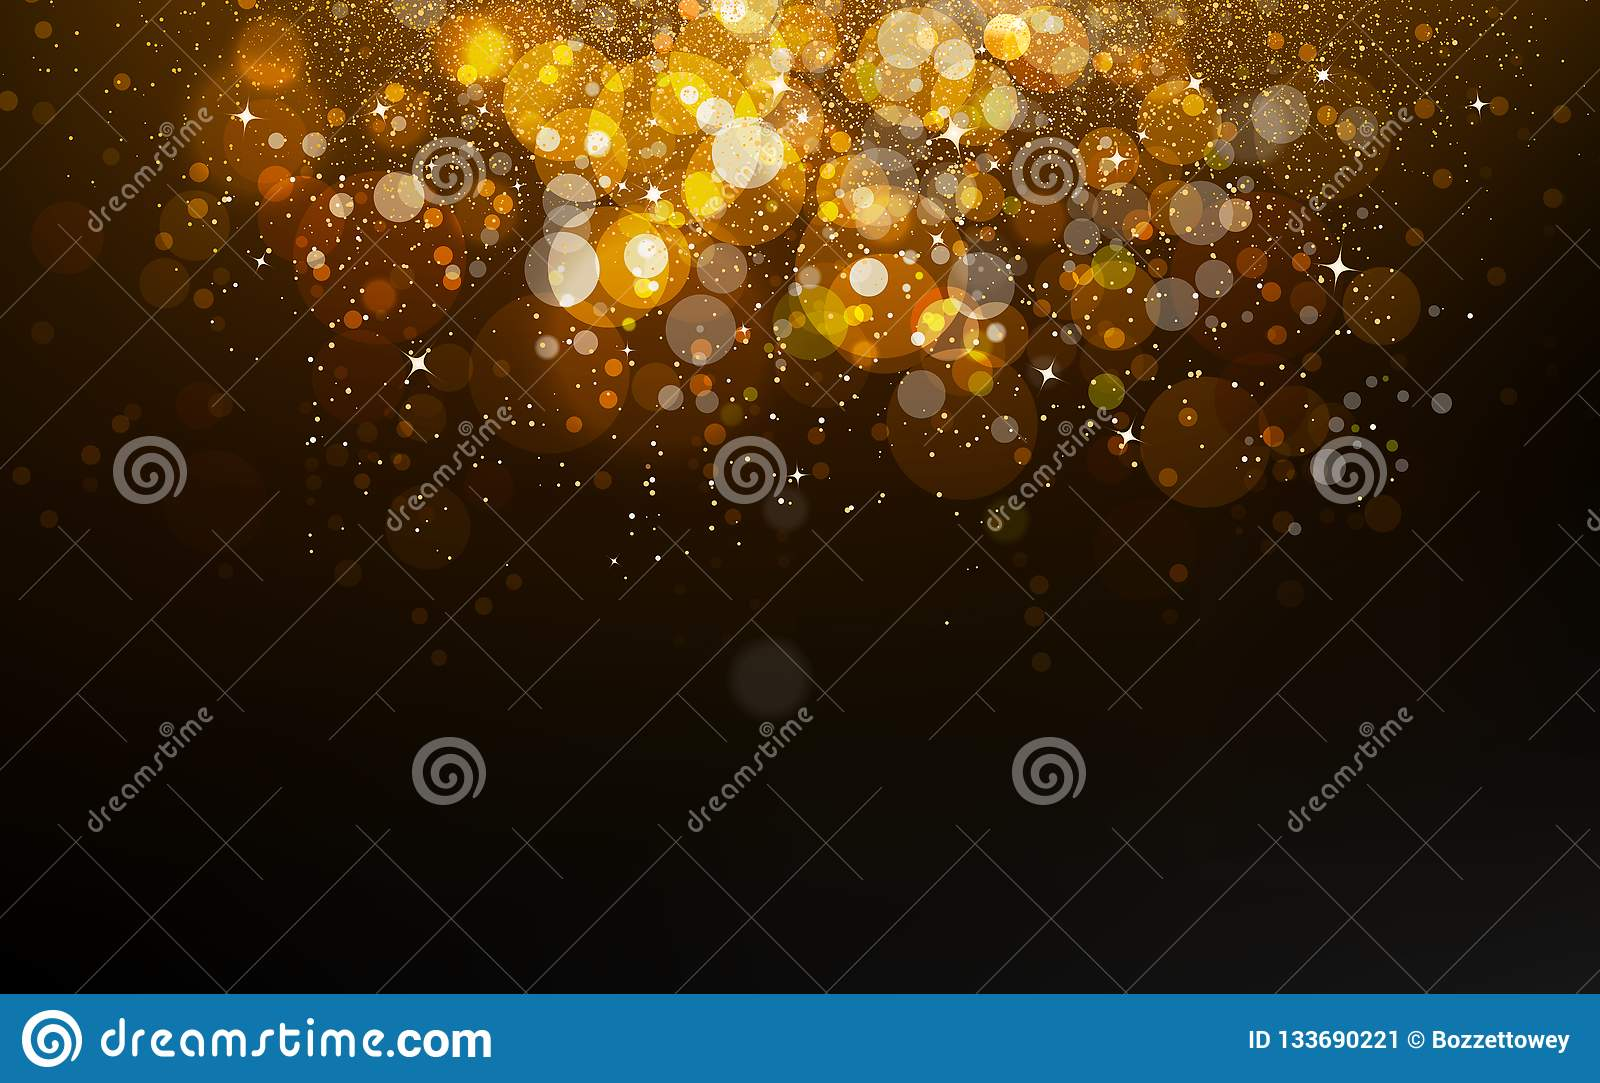 Gold stars falling confetti, dust, glowing particles scatter glitter blinking shine sparkle celebration award abstract background